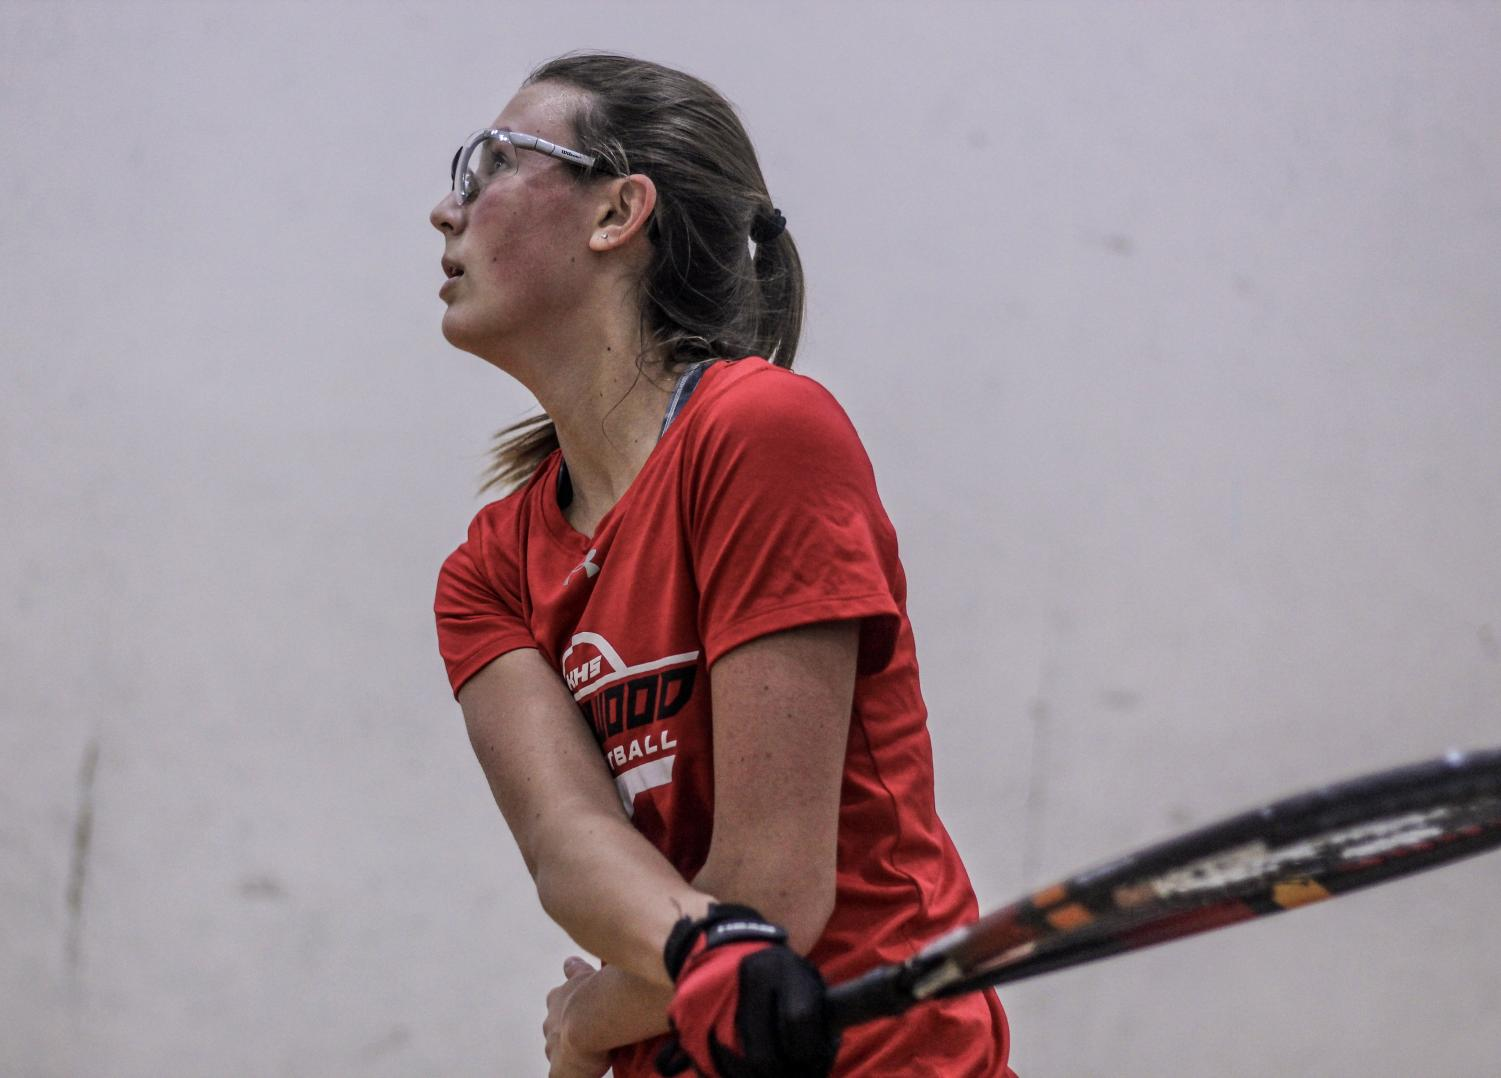 Watching+the+ball%2C+Alice+Reider%2C+senior%2C+competes+in+a+racquetball+tournament+Feb.+17.